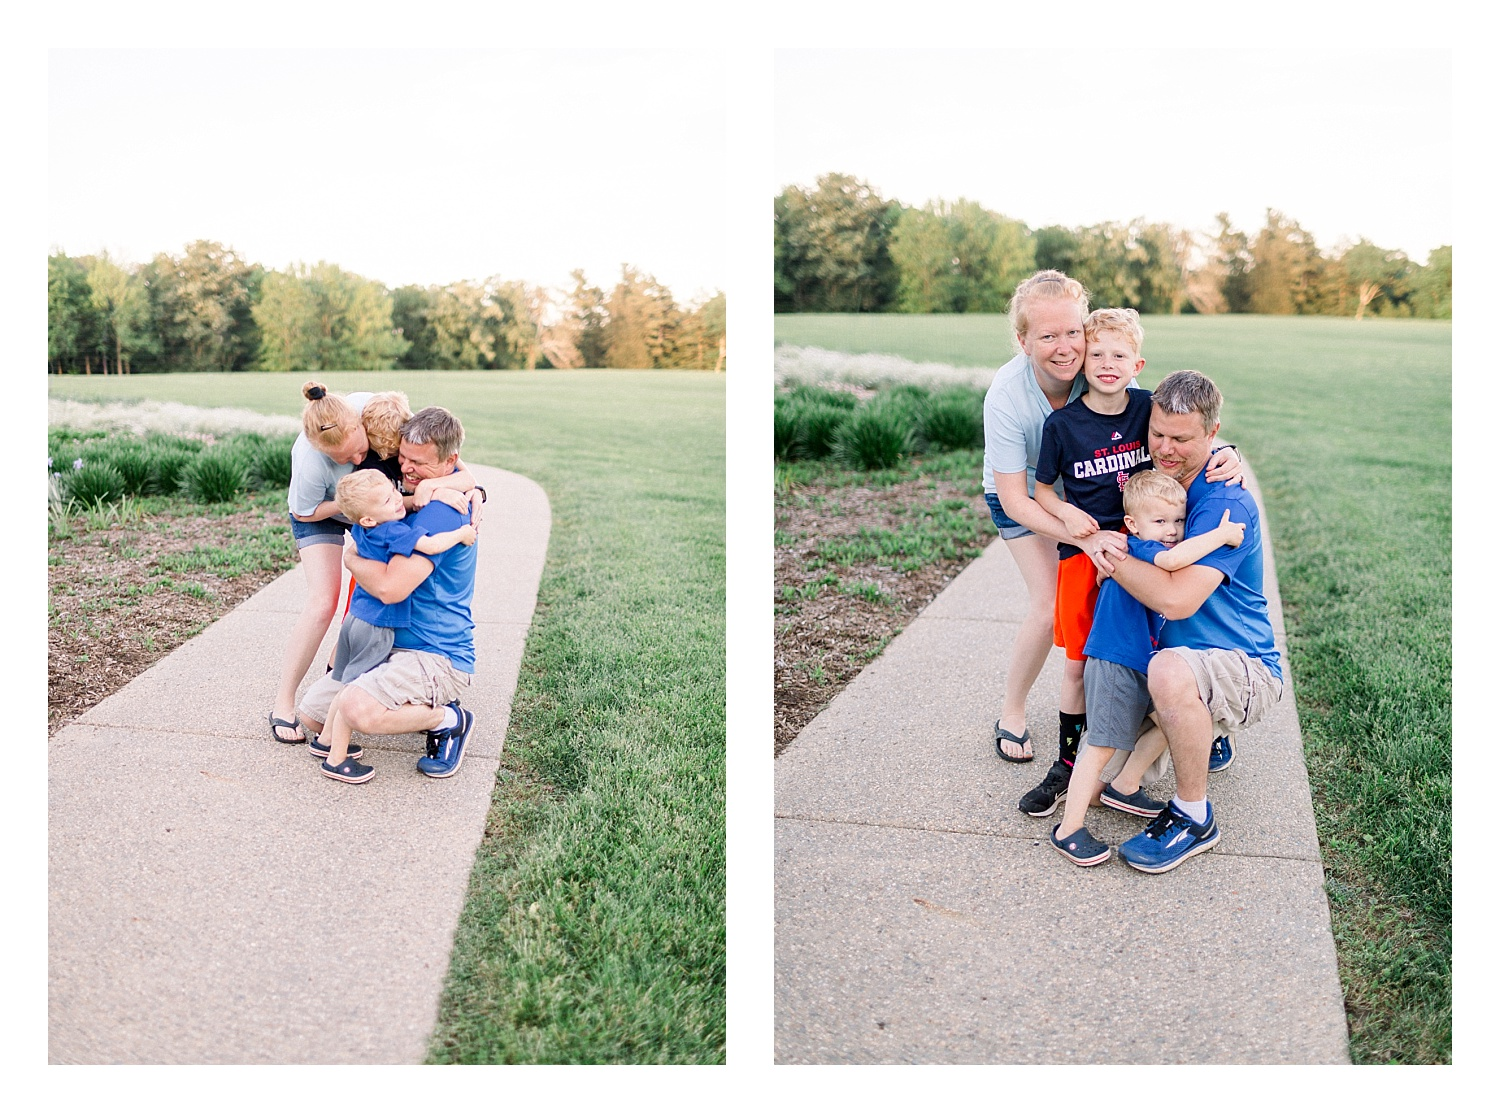 Wisconsin-Family-Photographers-Elle-x-Troy-Photography-The-Bopp-Family-Robert-Allerton-Park-Monticello-Illinois_0020.jpg